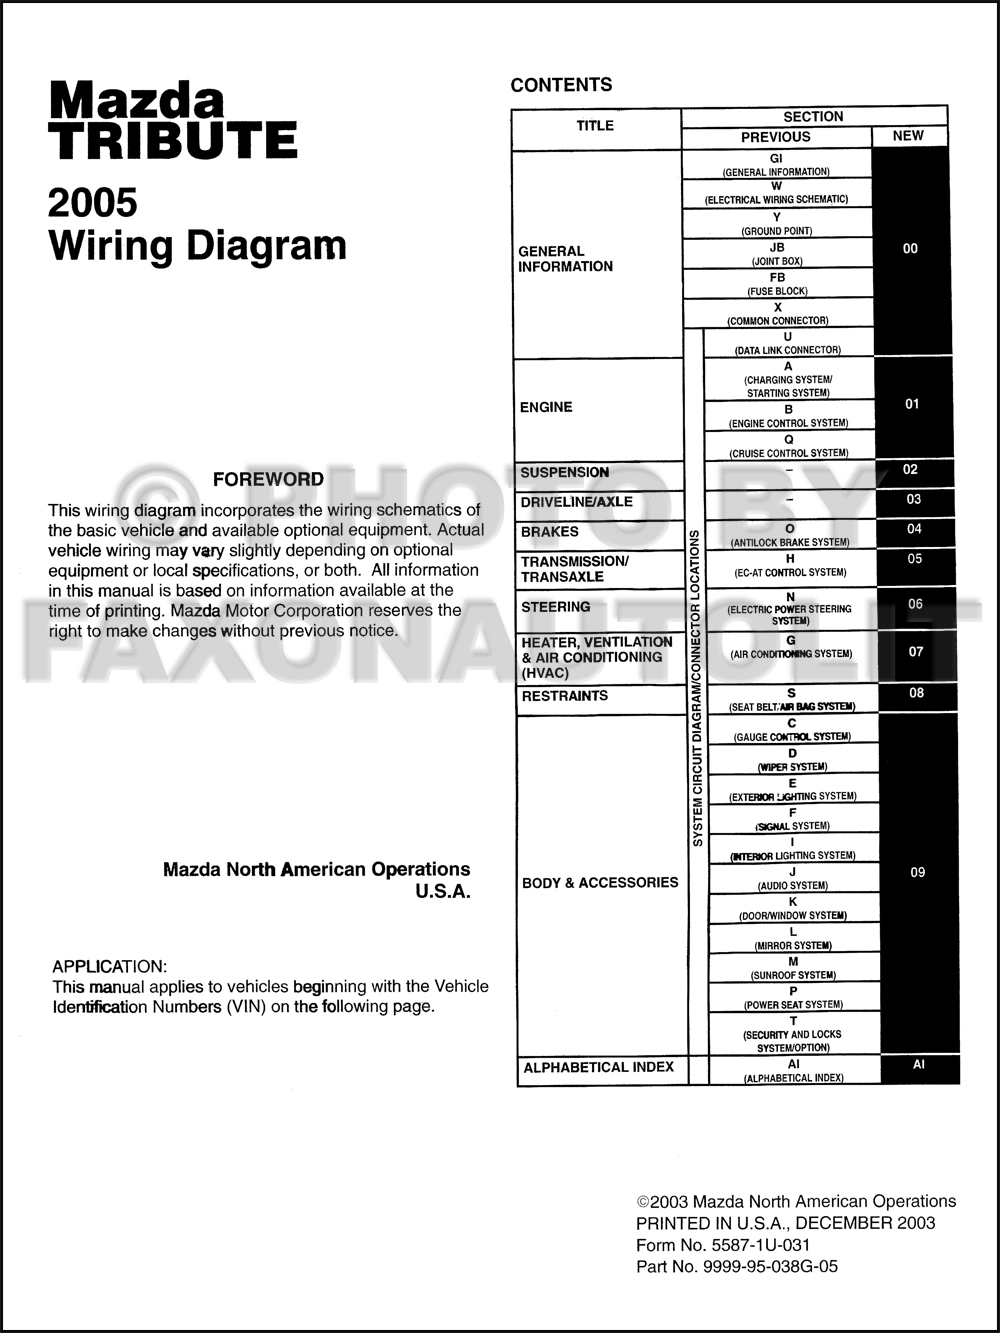 2002 Mazda Tribute Wiring Diagram - Wiring Diagram Server pipe-match -  pipe-match.ristoranteitredenari.it | Wiring Diagram For 2002 Mazda Tribute |  | Ristorante I Tre Denari Manerbio